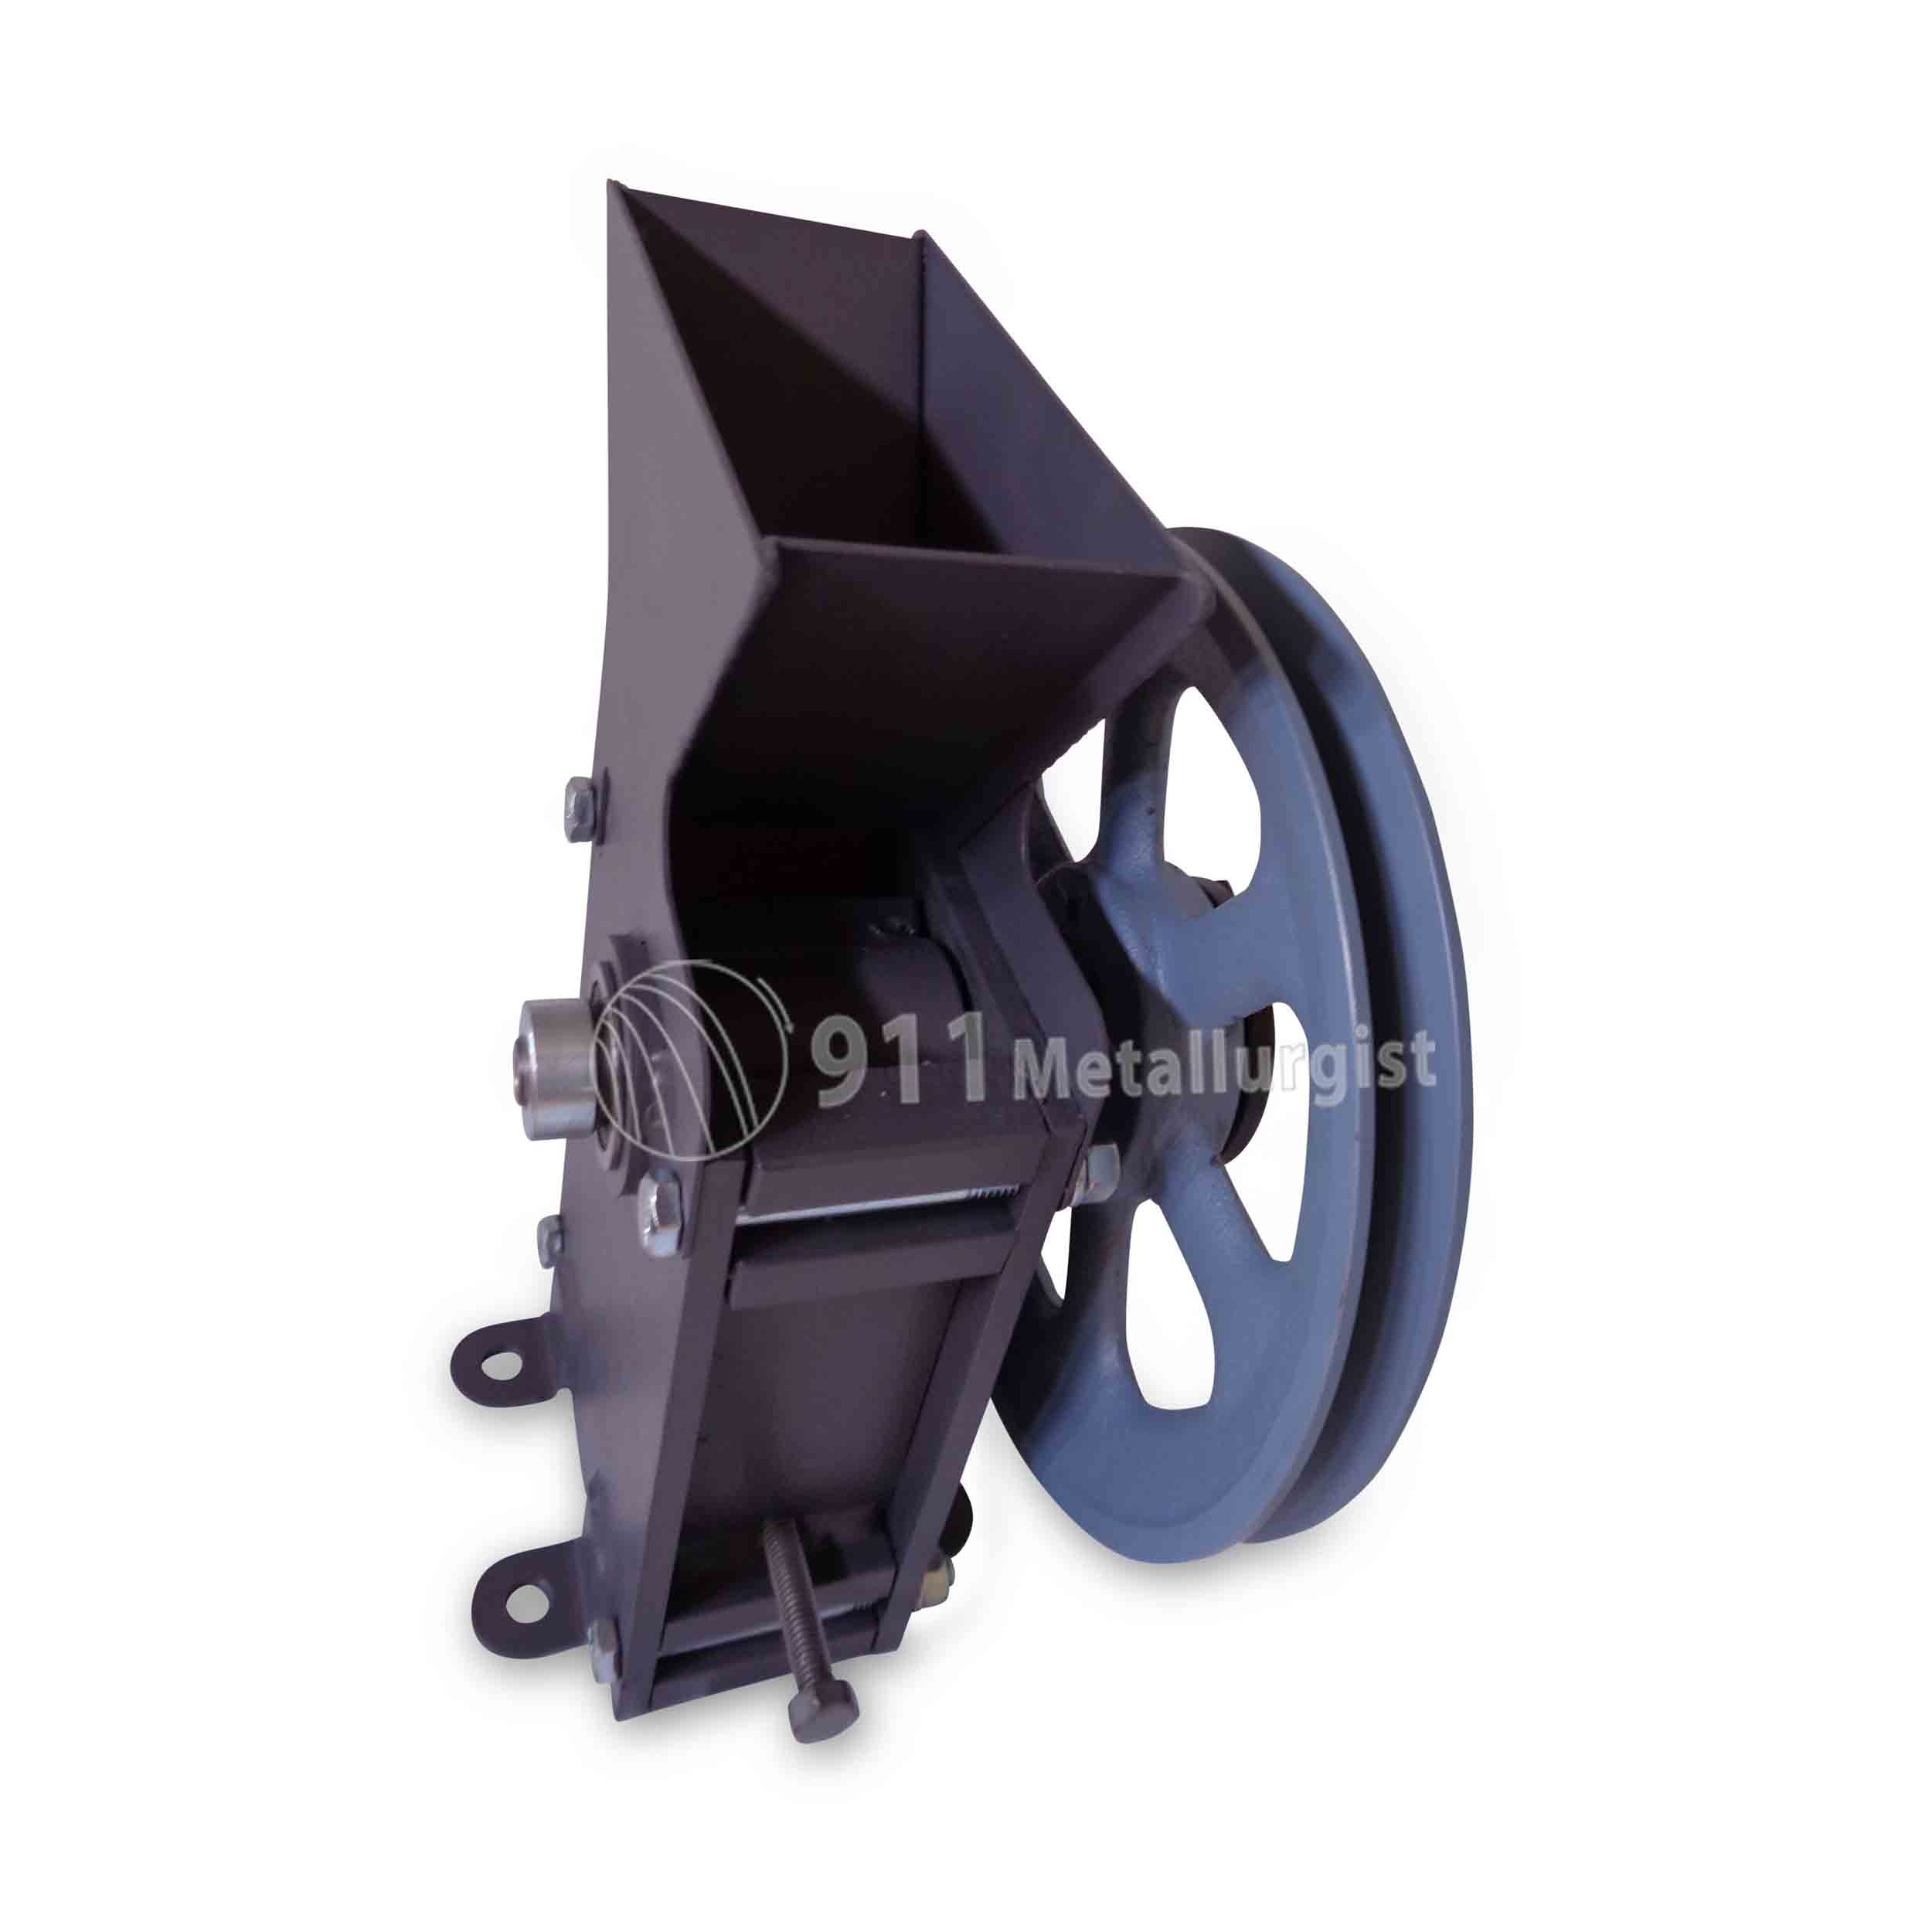 small portable rock crusher is easy Portable rock crusher - gold samples are incredibly easy to pan or separate because the ground-up material although very small pieces of rock remain.